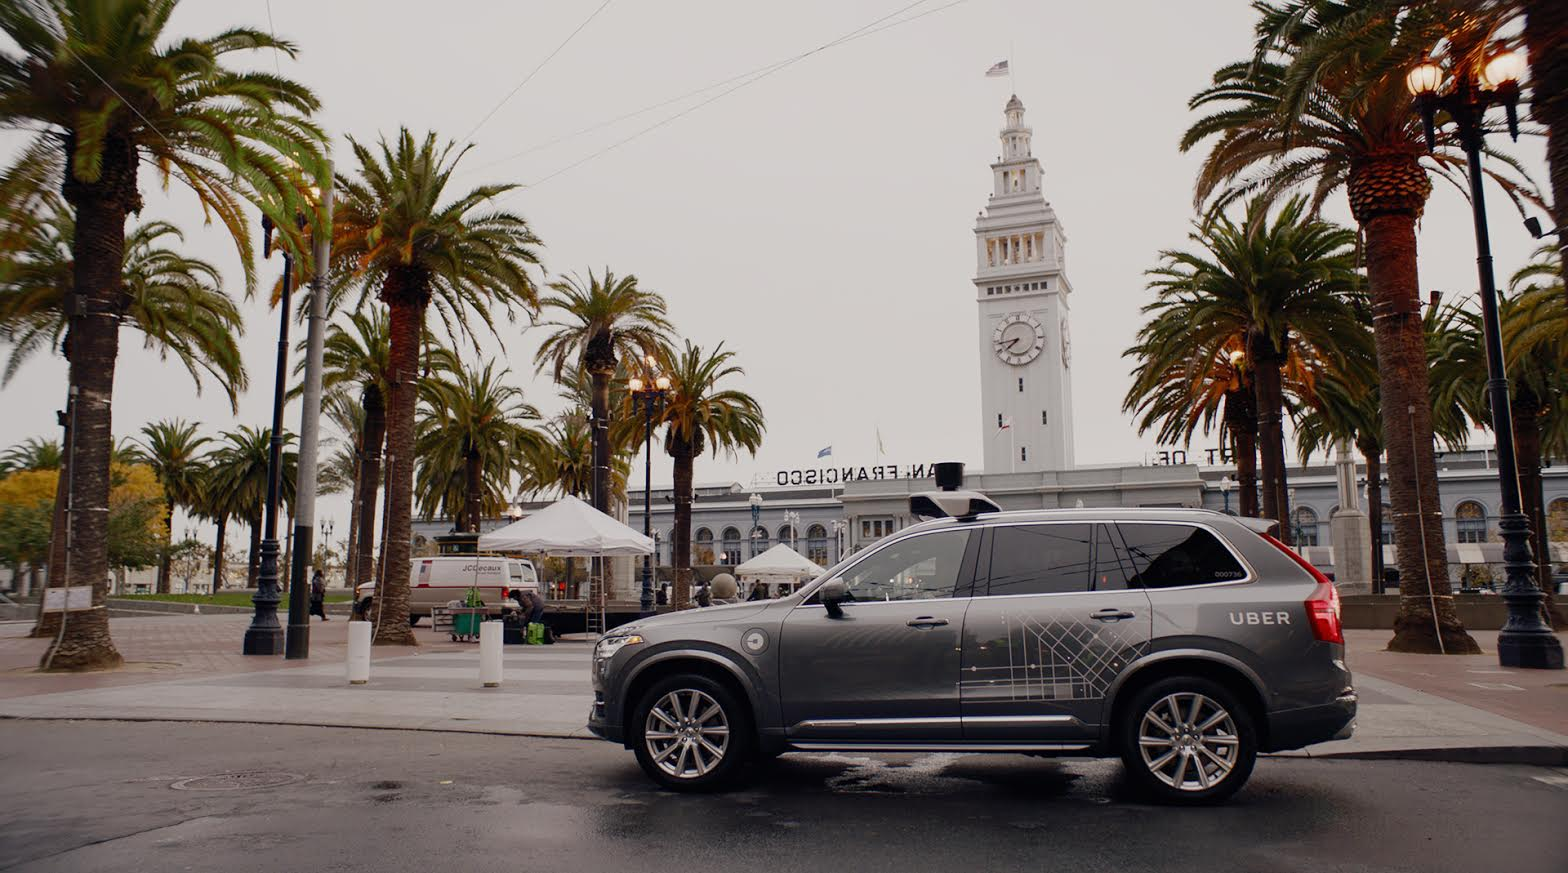 Uber has Removed its Self-driving Cars from San Francisco's Roads